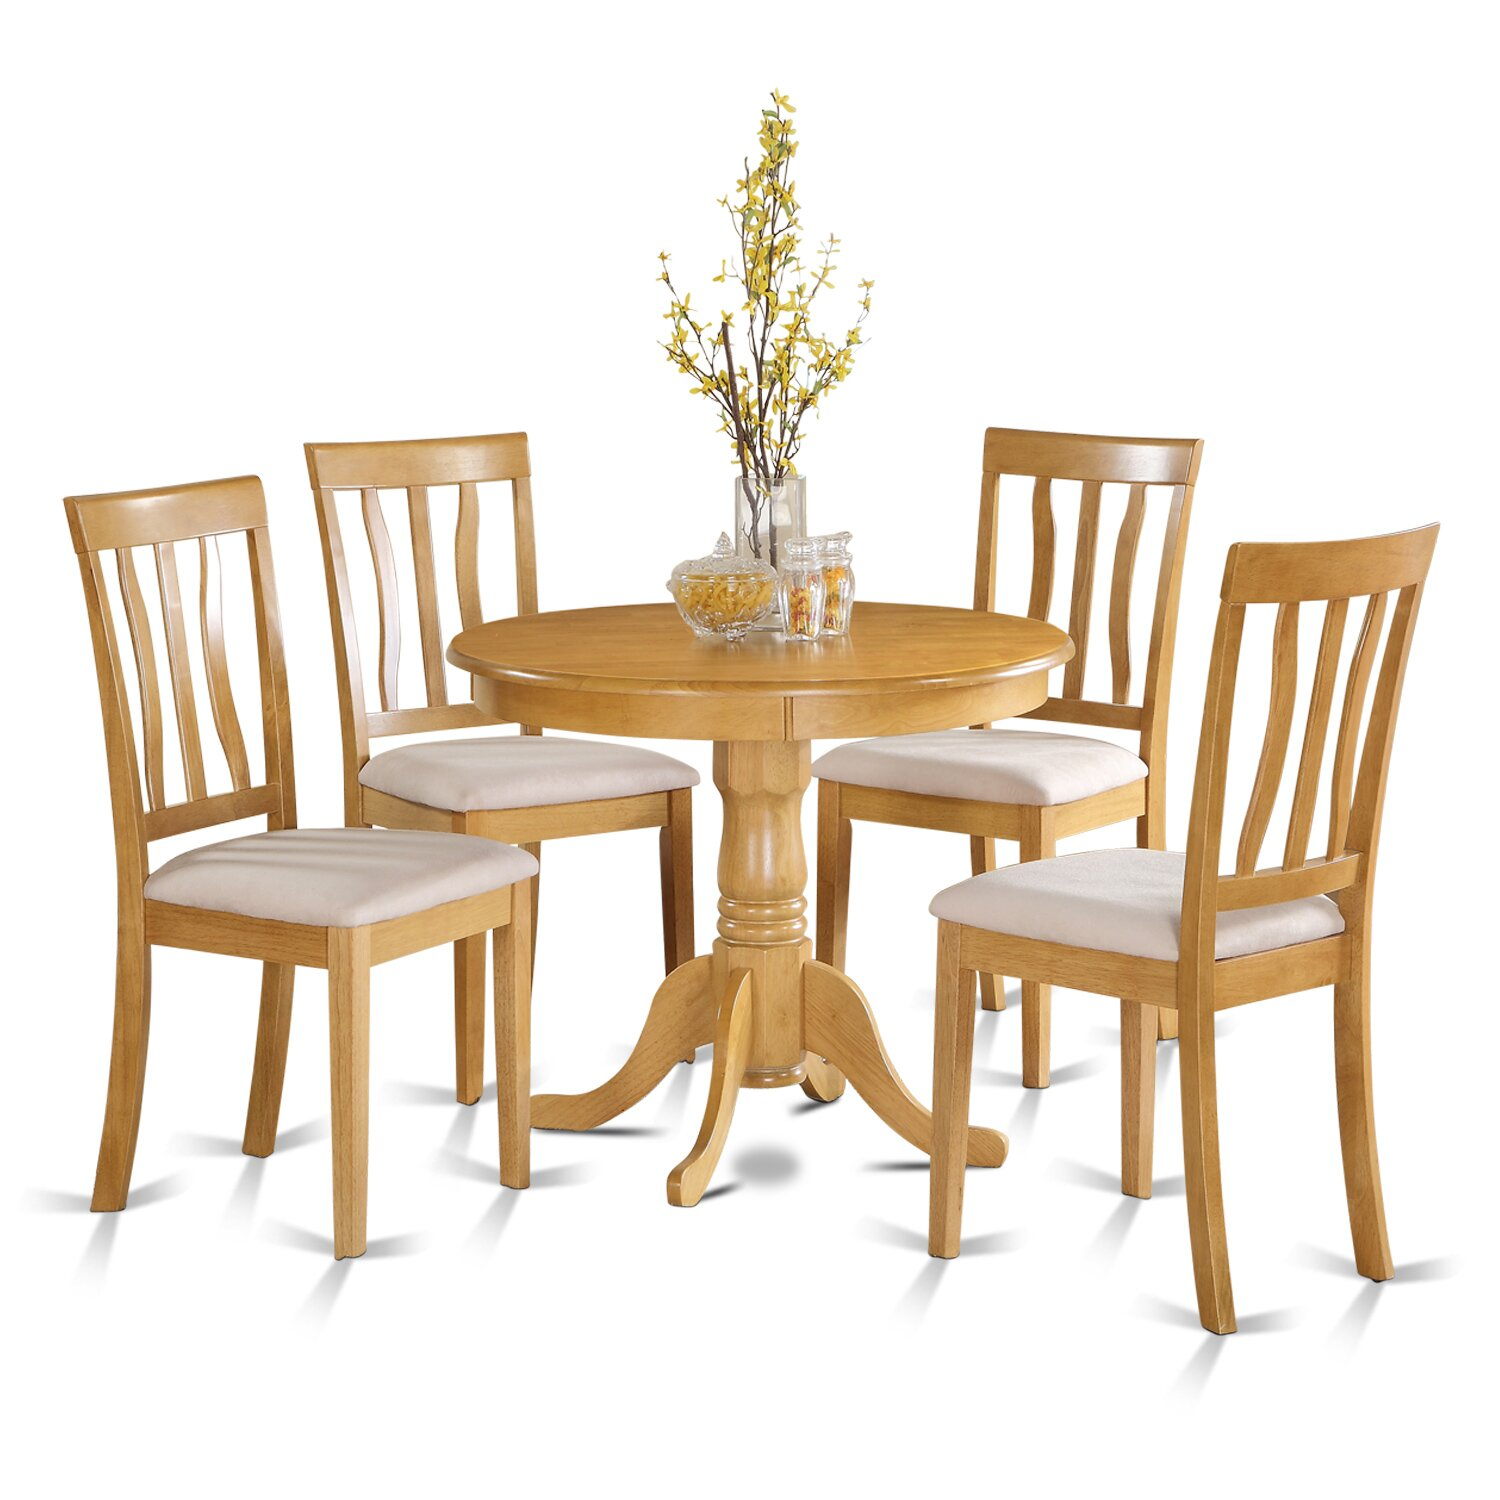 Wooden importers 5 piece dining set reviews wayfair for Small kitchen table and chairs